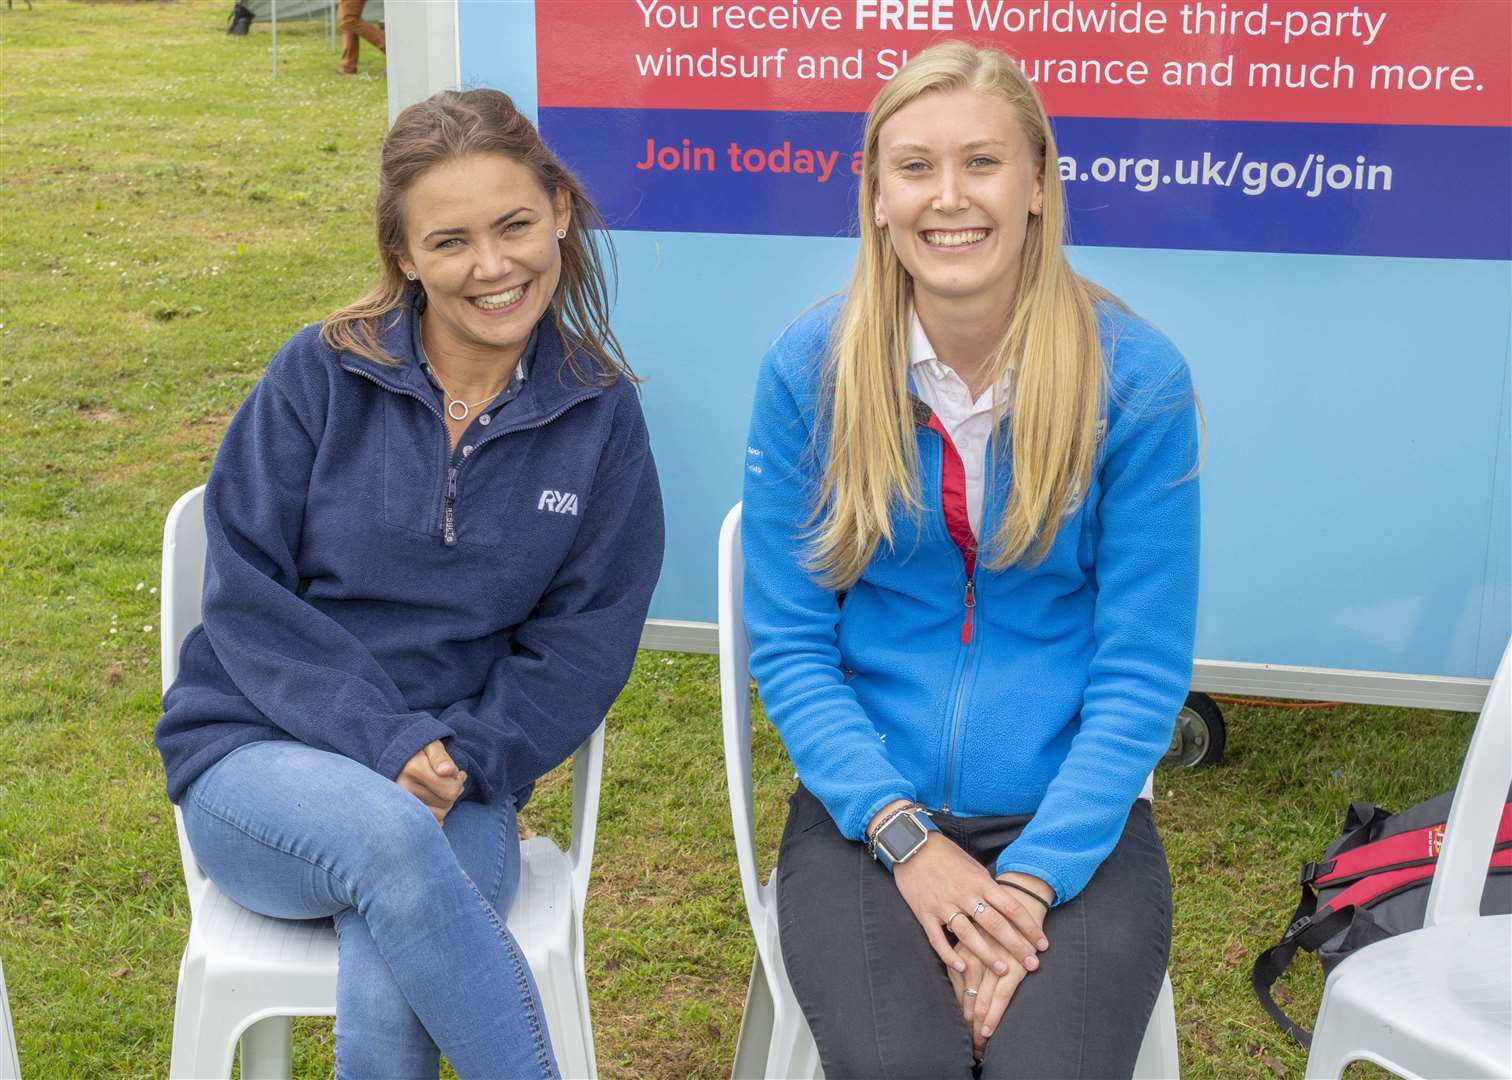 Jessica Lawler and Mollie Knowlden from RYA Photo: Lee Hellwing